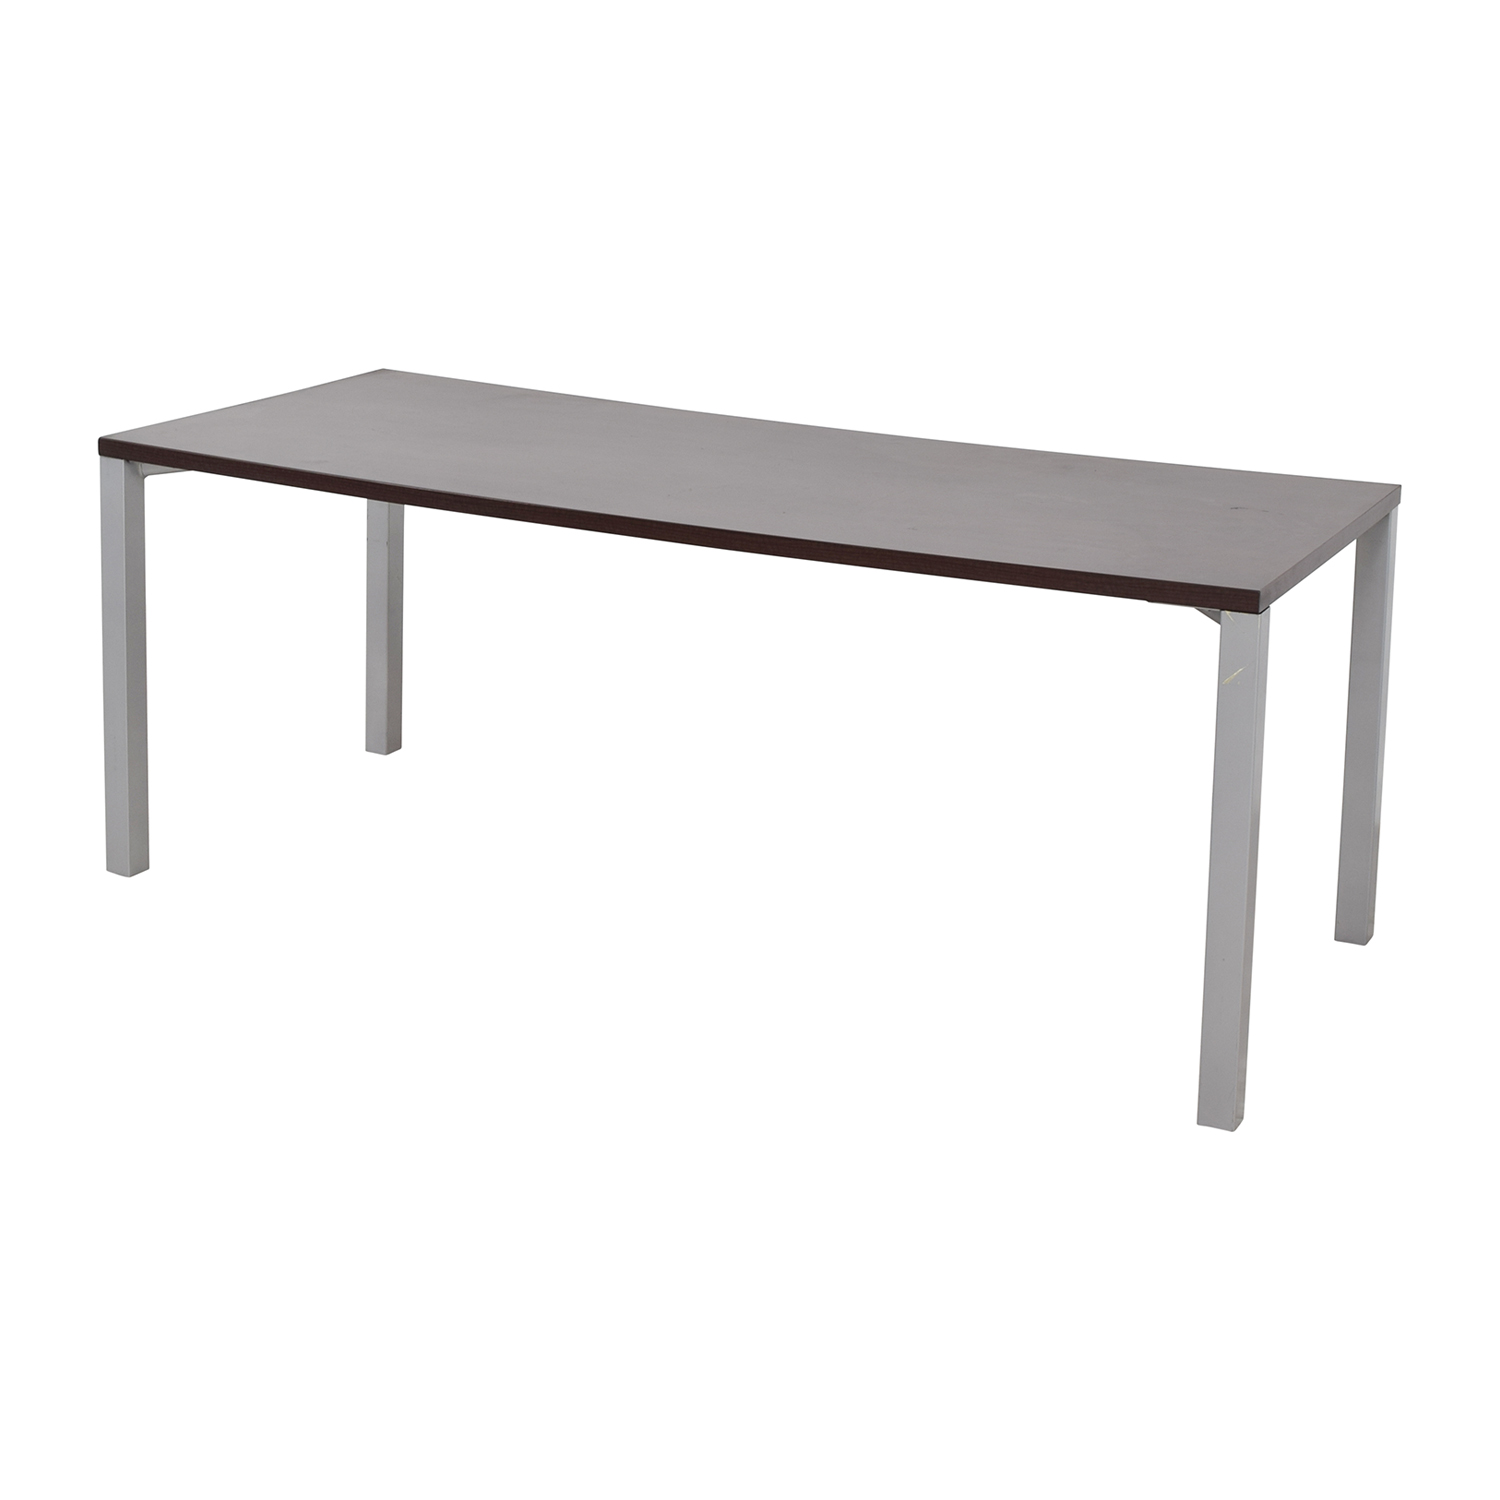 Steelcase Steelcase Currency Martin Desk discount